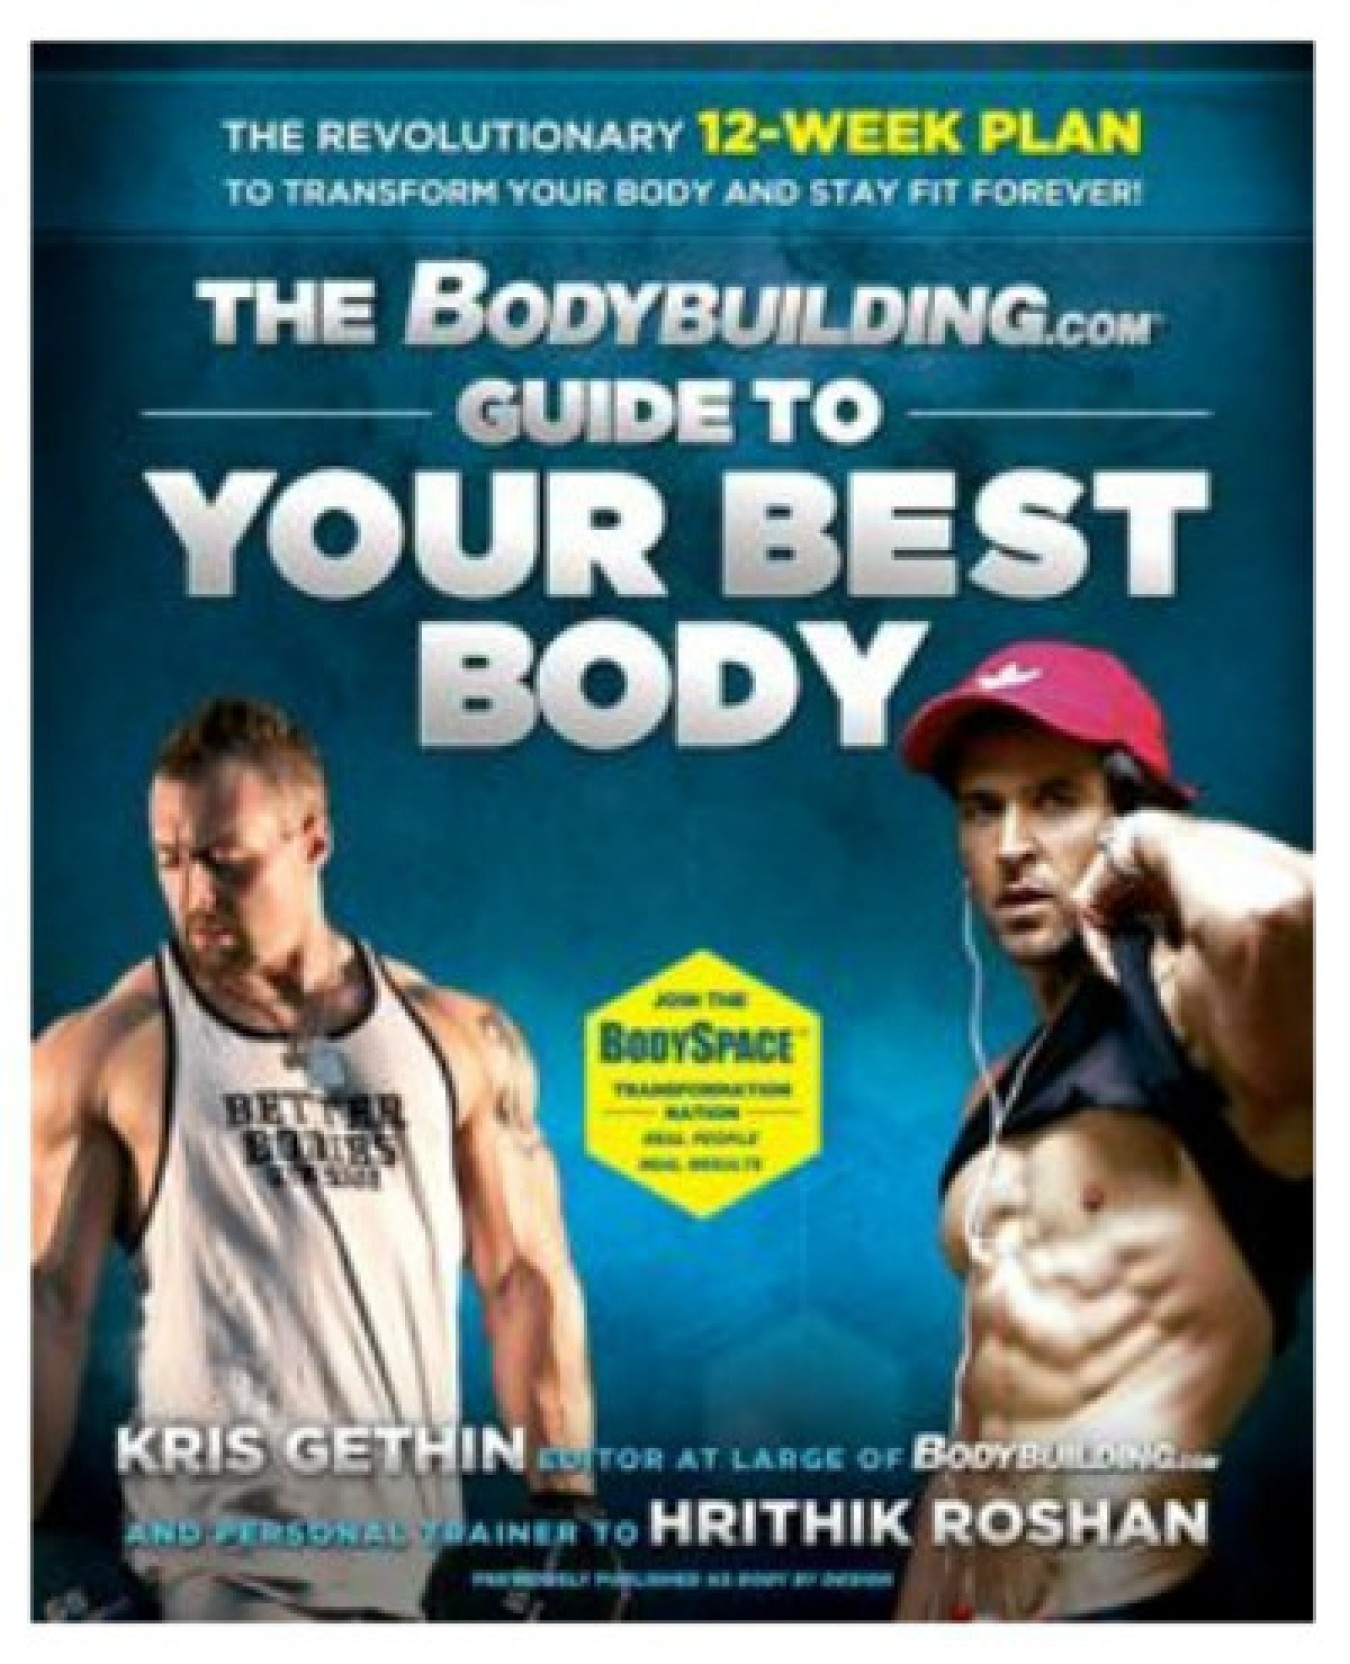 Guide to your best body kris gethin pdf free